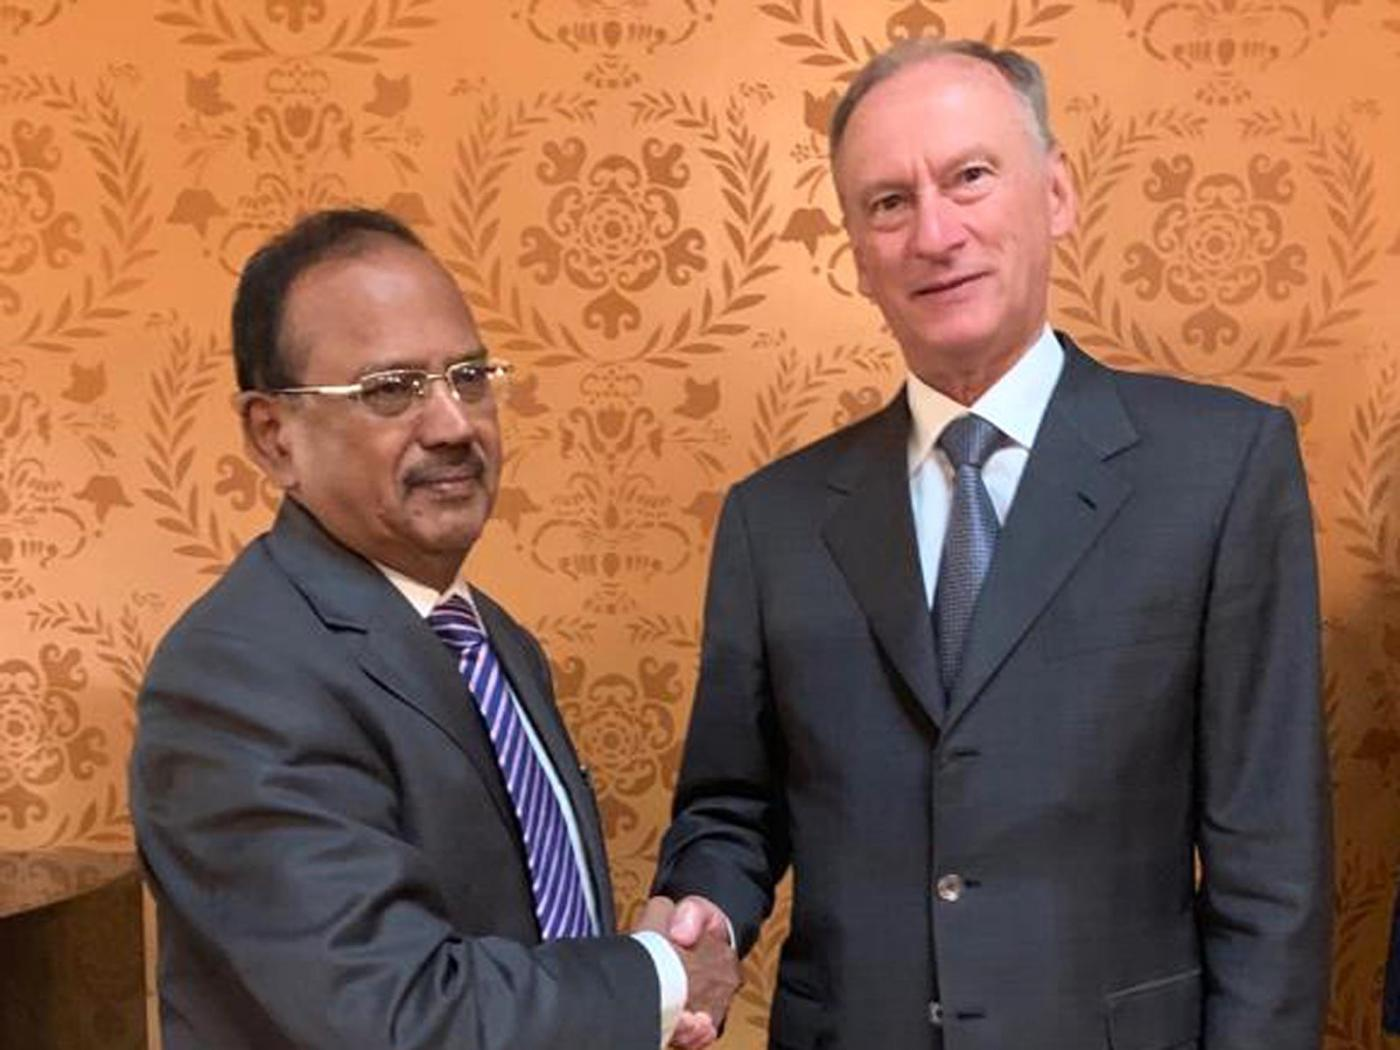 New Delhi: National Security Advisor Ajit Doval meets his Russian counterpart Nikolai Patrushev in Moscow. (Photo: IANS) by .